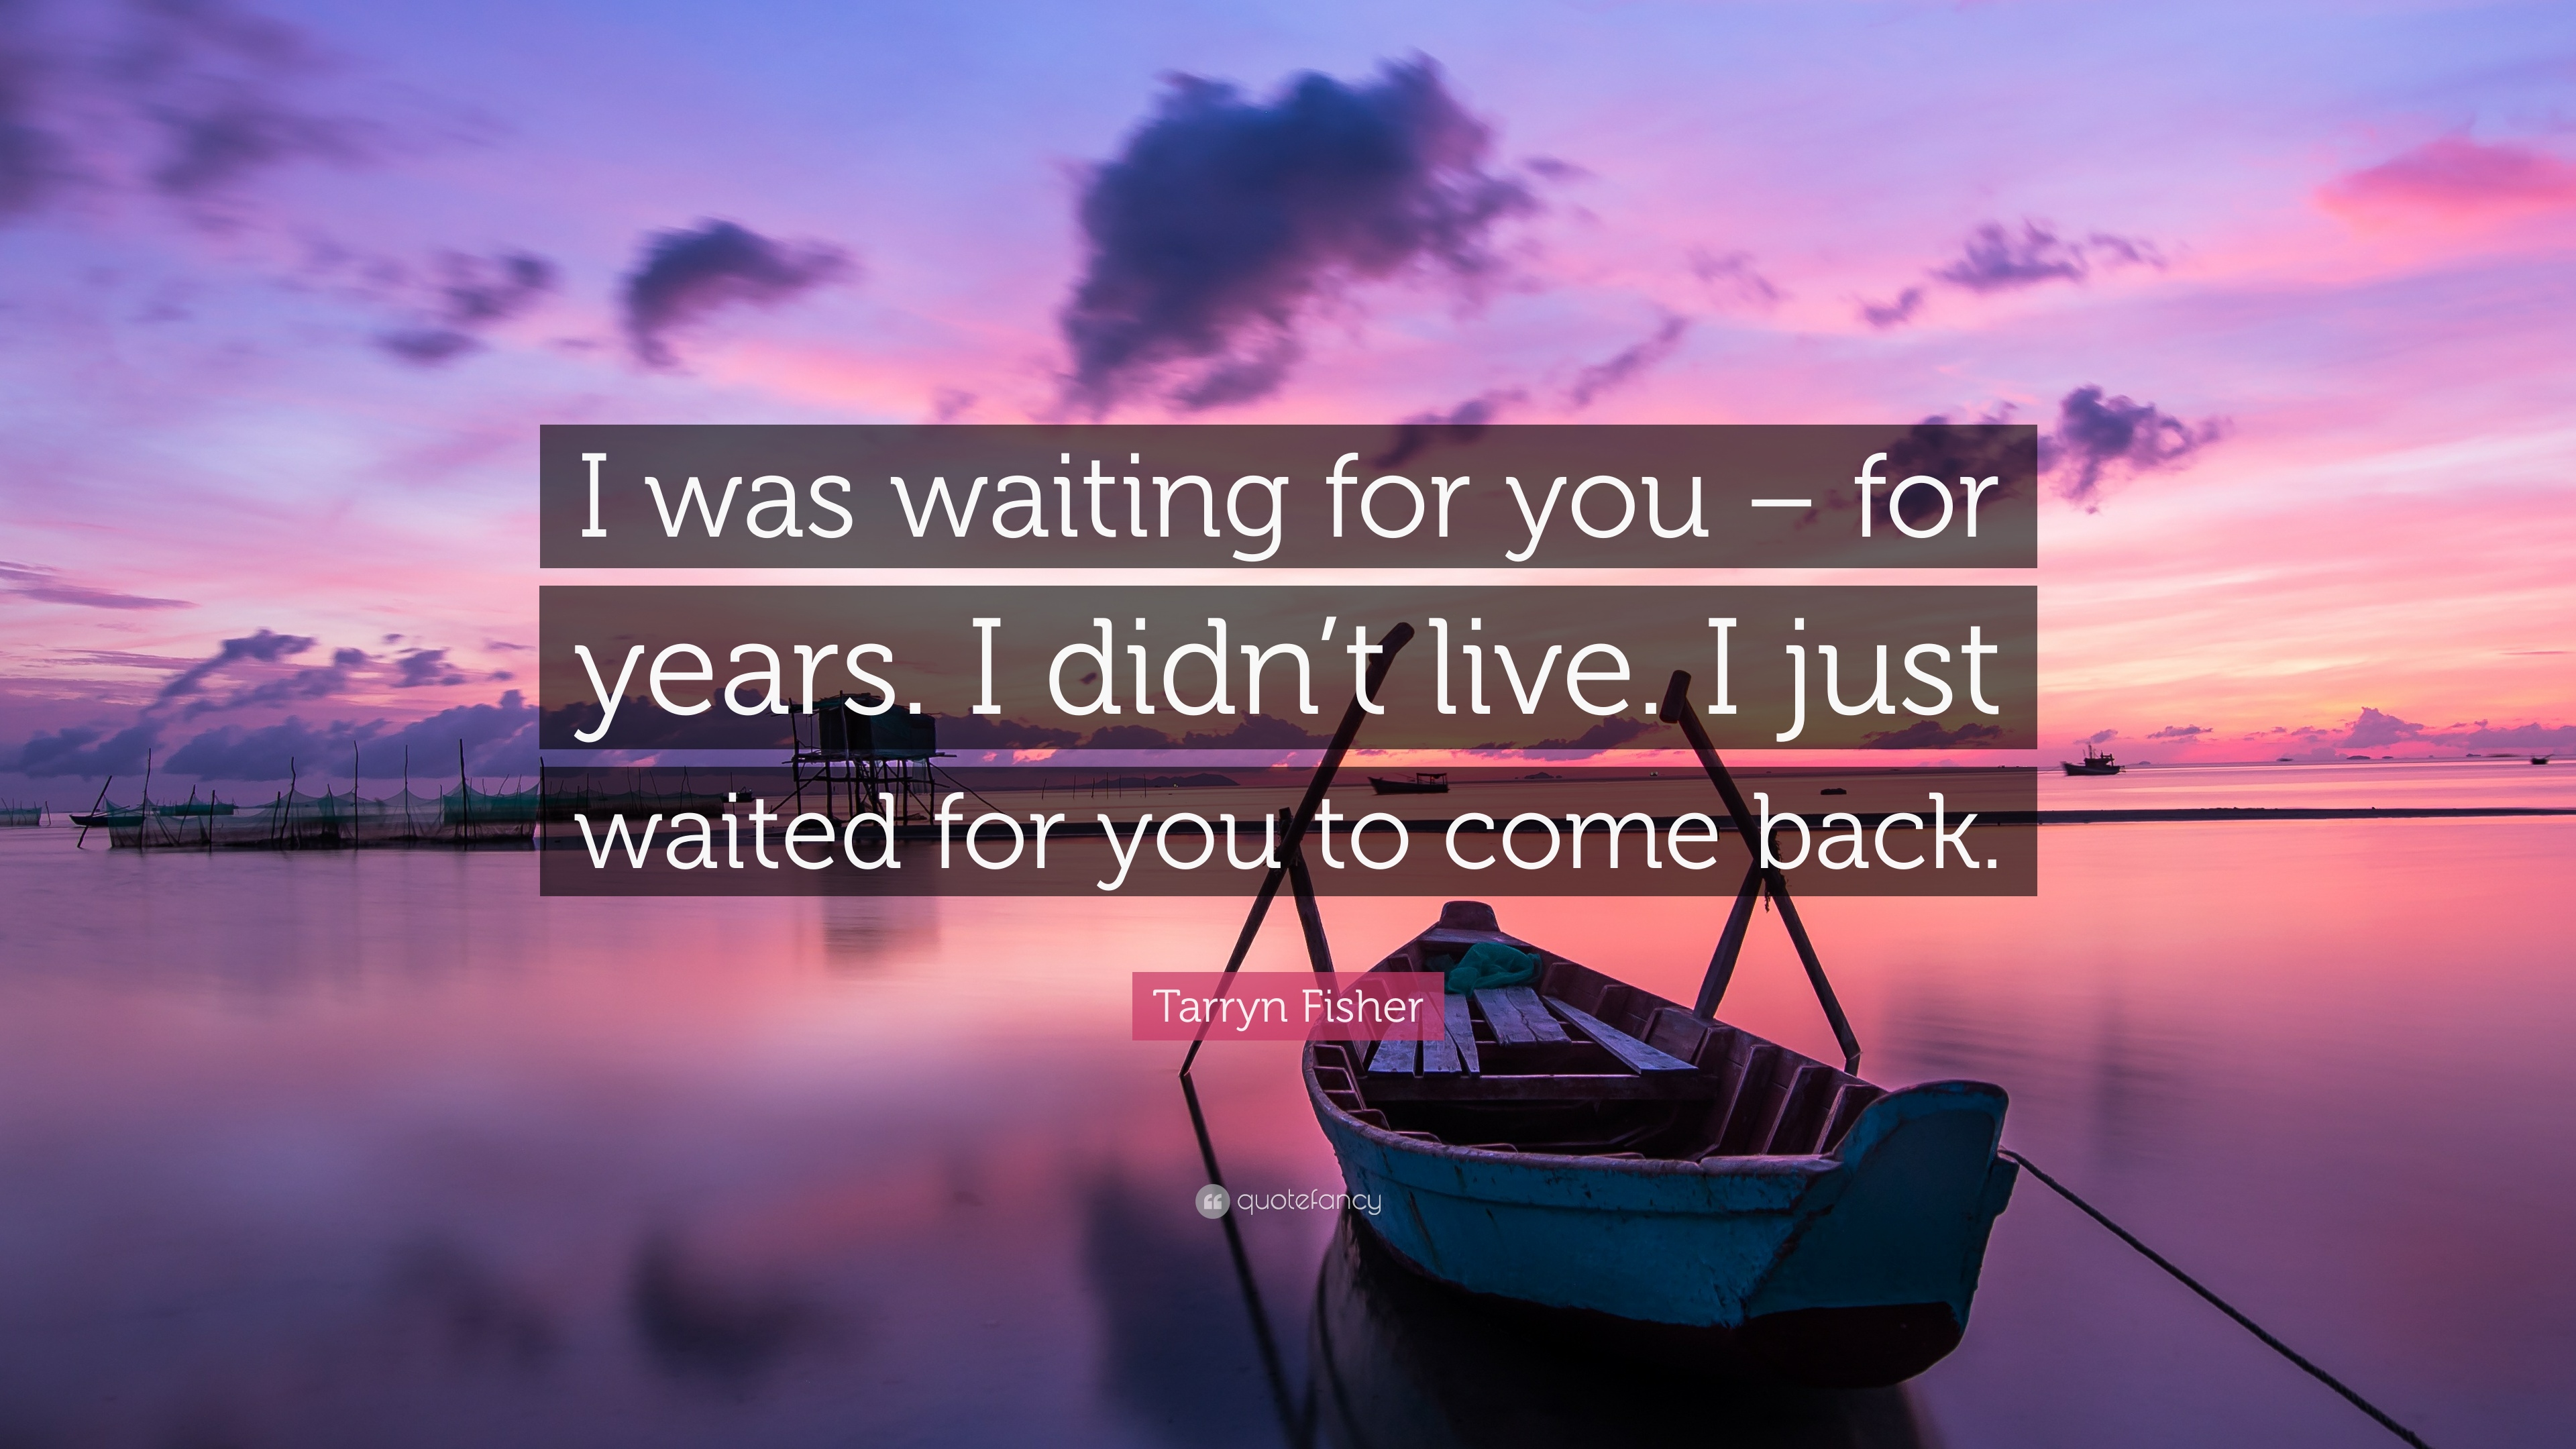 Waiting You Come Back Quotes Everyone Is Waiting For You To Come